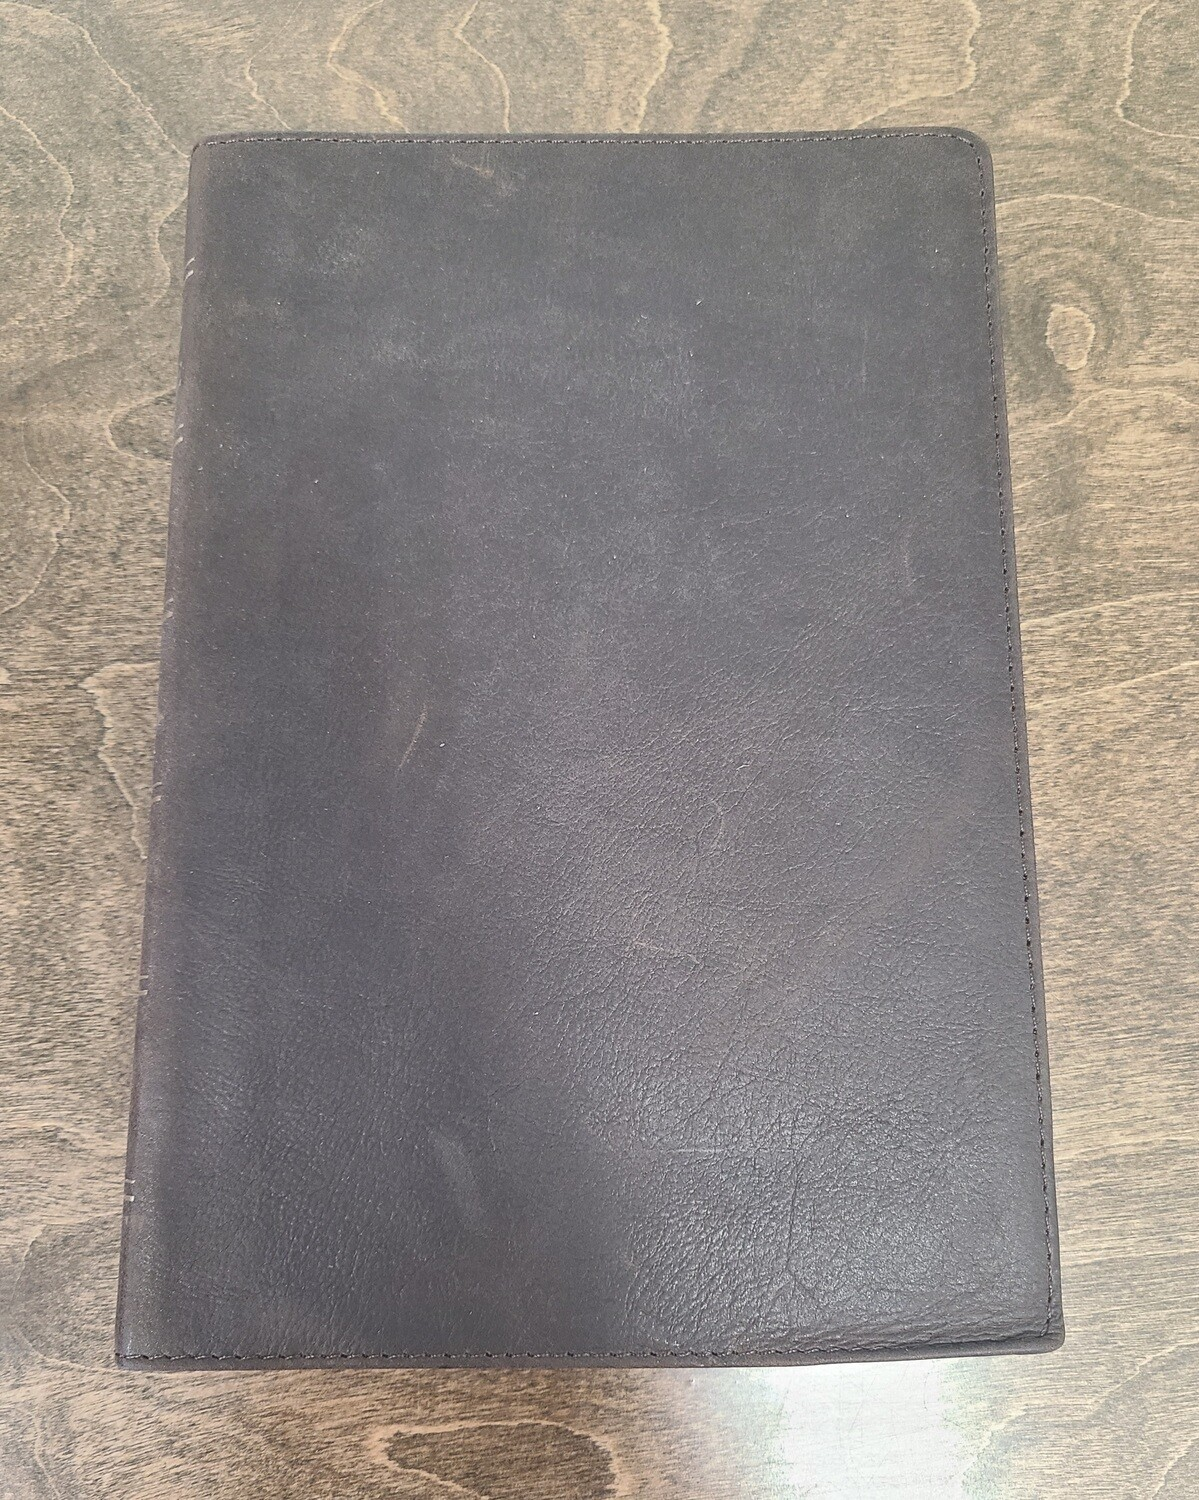 Dark Brown Premium Leather Large Print Thinline KJV Bible with Thumb Index